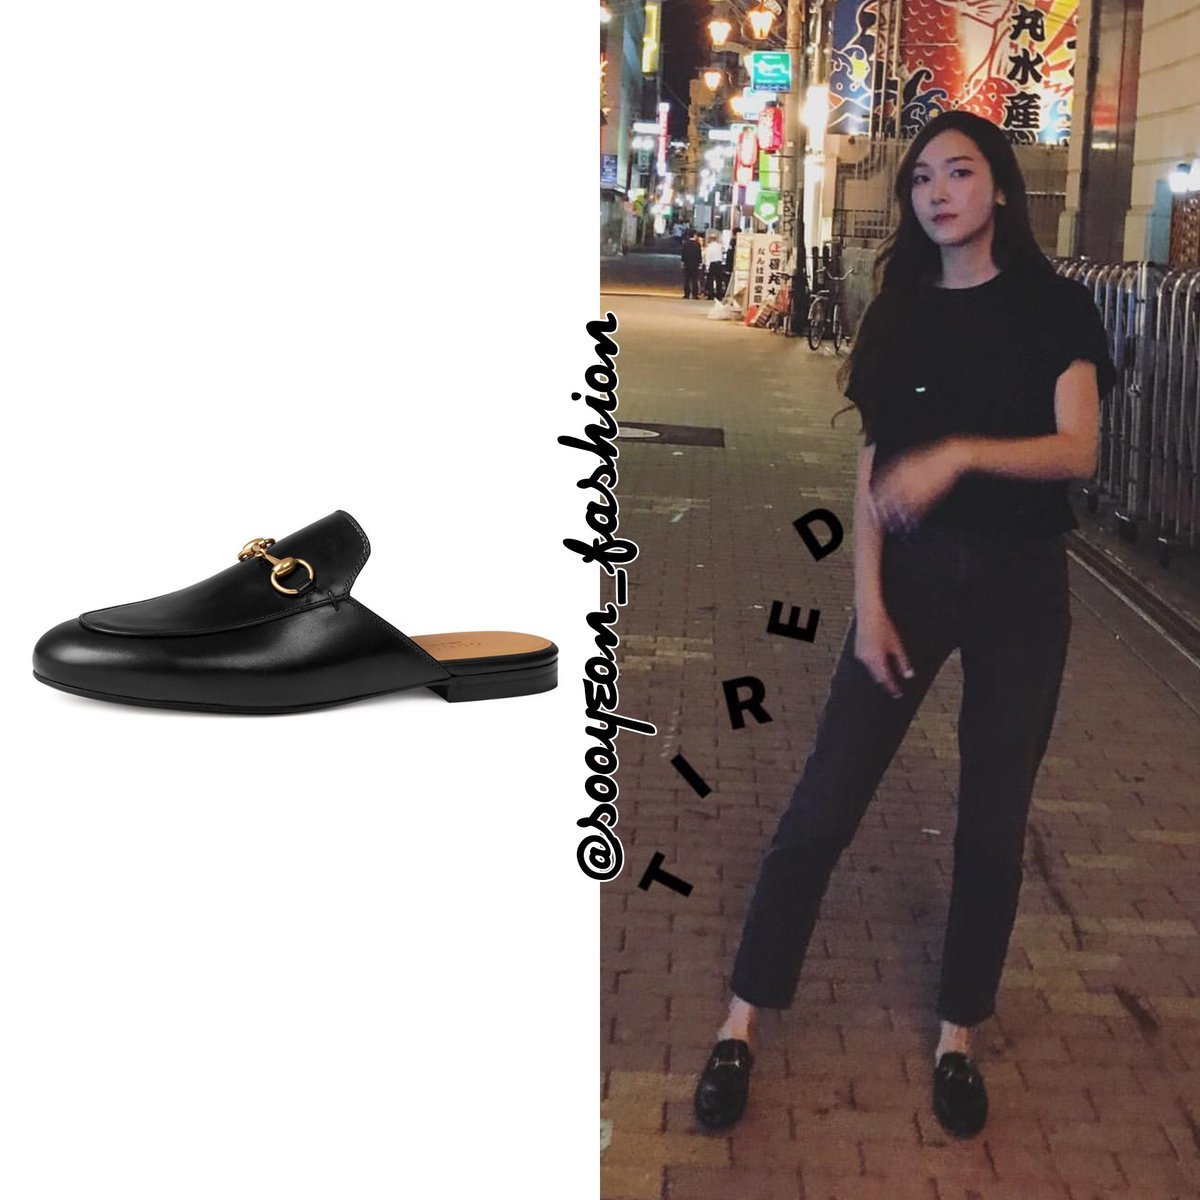 56cd8a854a61 ... /princetown-leather-slipper-p-423513BLM001000?position=69&listName=ProductGridComponent&categoryPath=Women/Womens-Shoes/Womens-Moccasins-Loafers  …